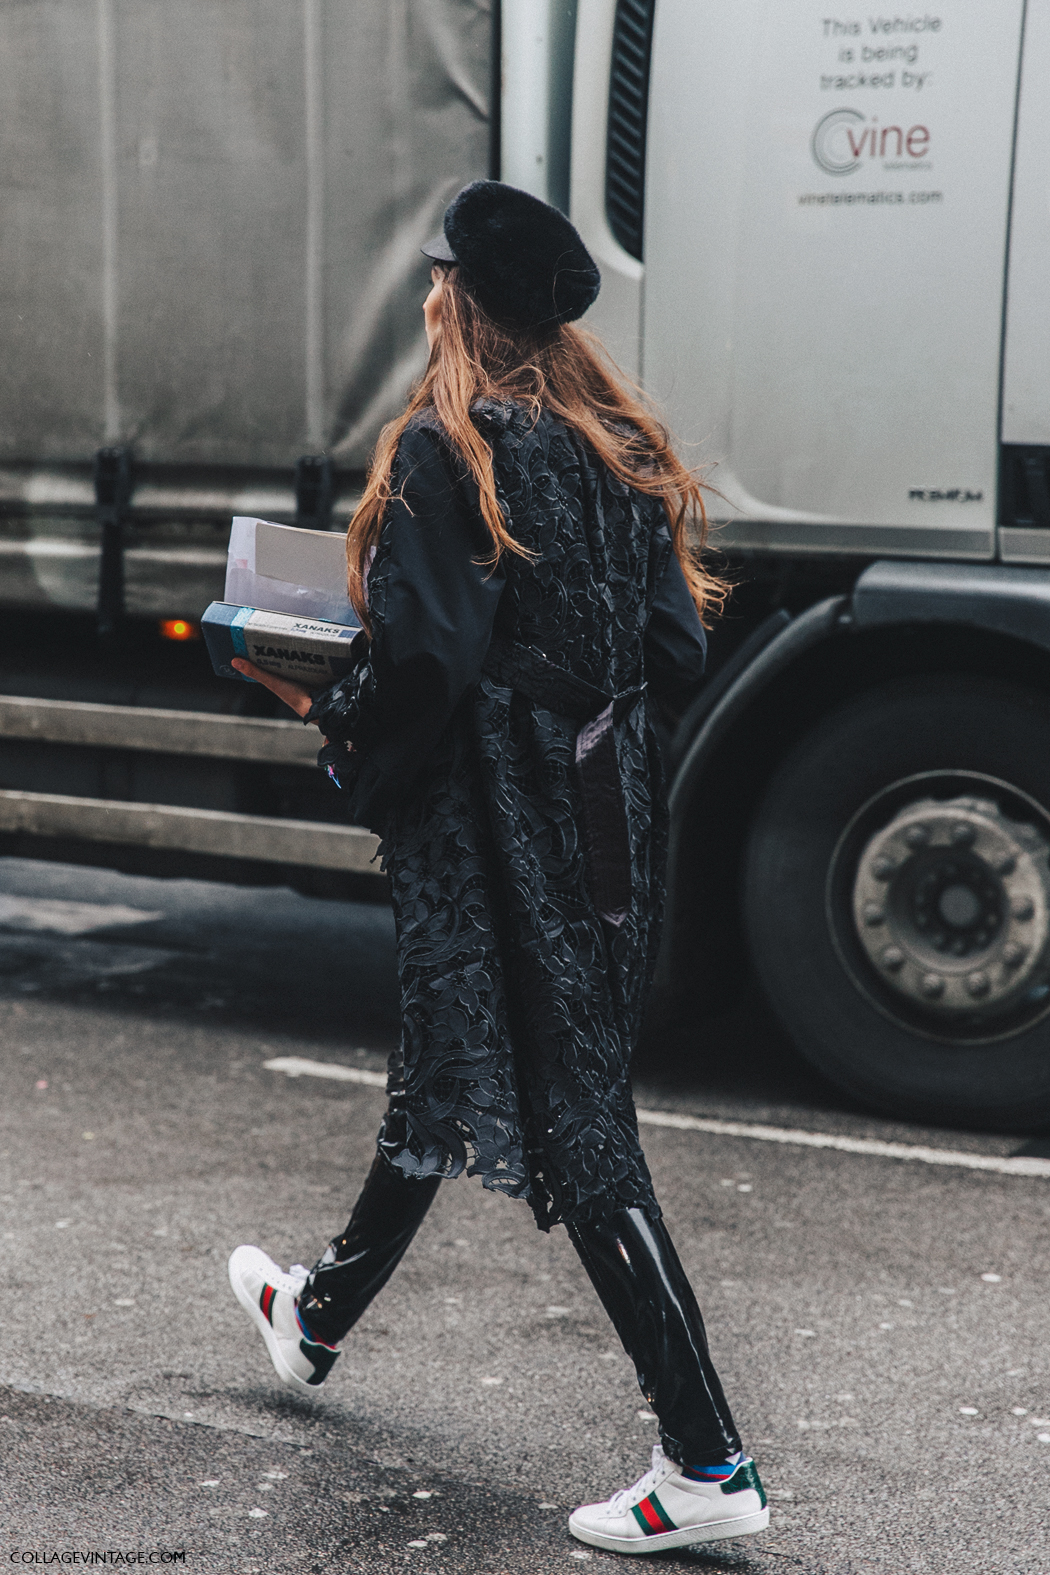 LFW-London_Fashion_Week_Fall_16-Street_Style-Collage_Vintage-Gucci-1